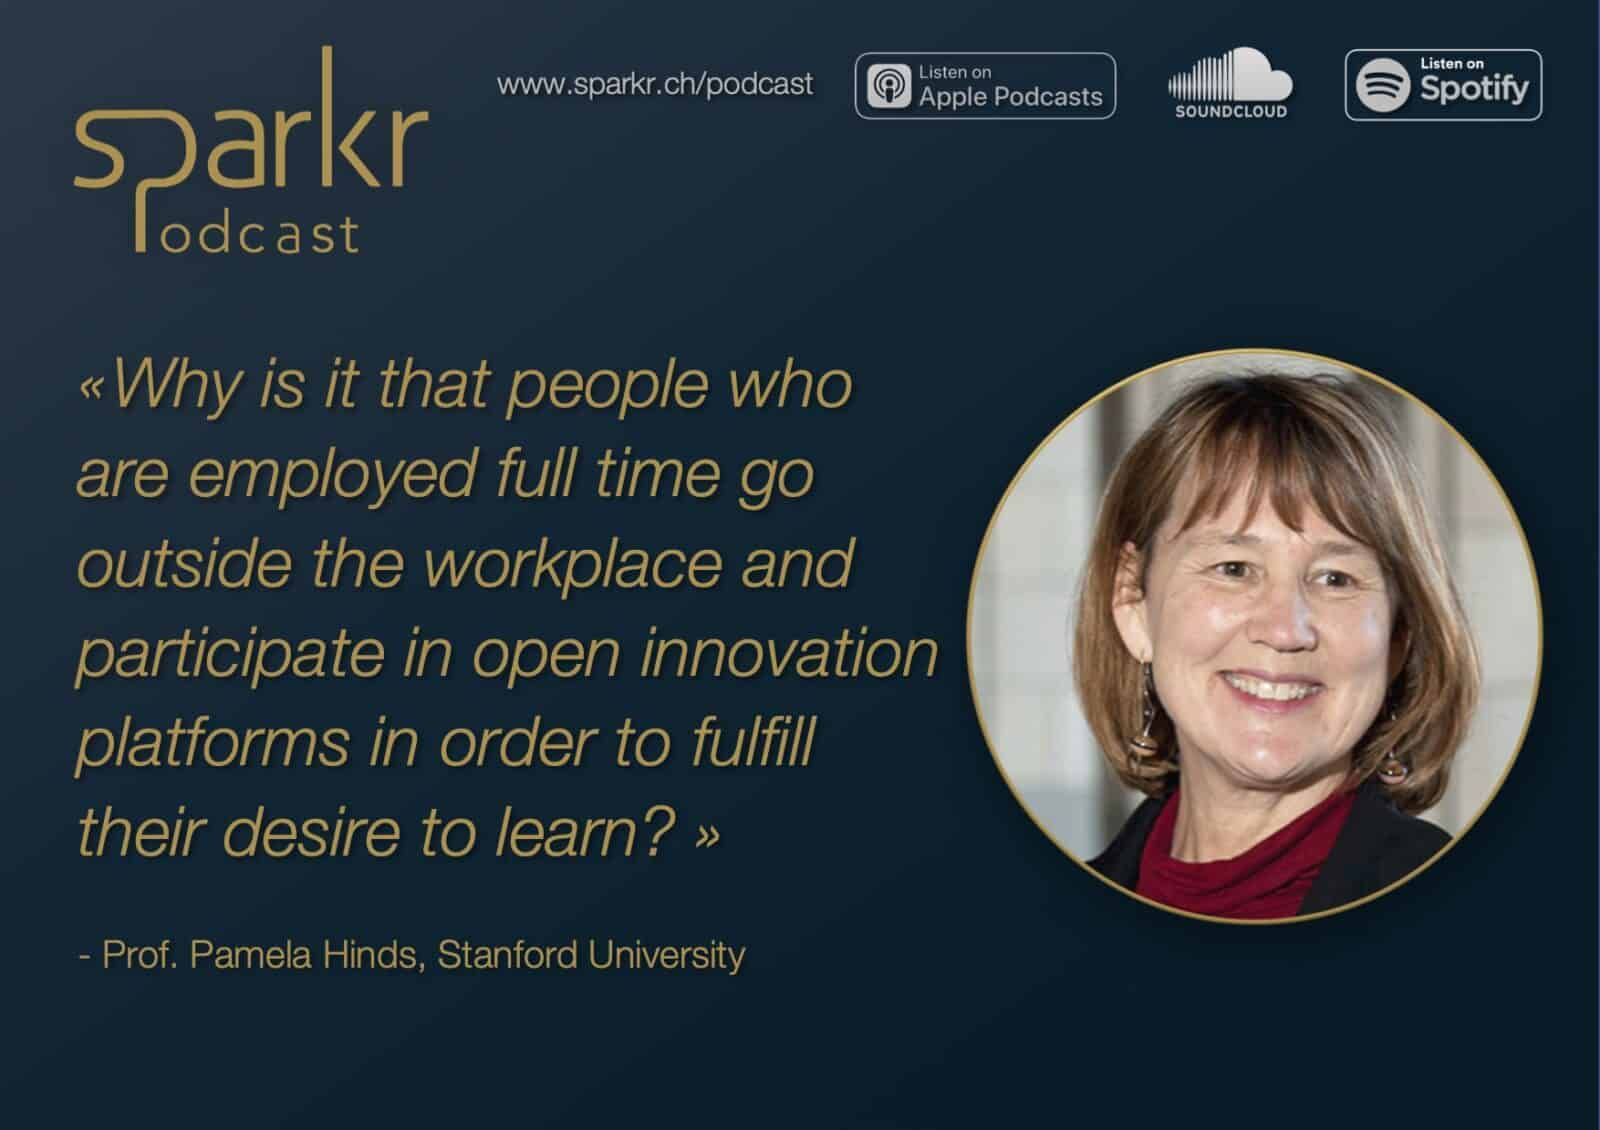 future of work best practice open innovation Pamela Hinds